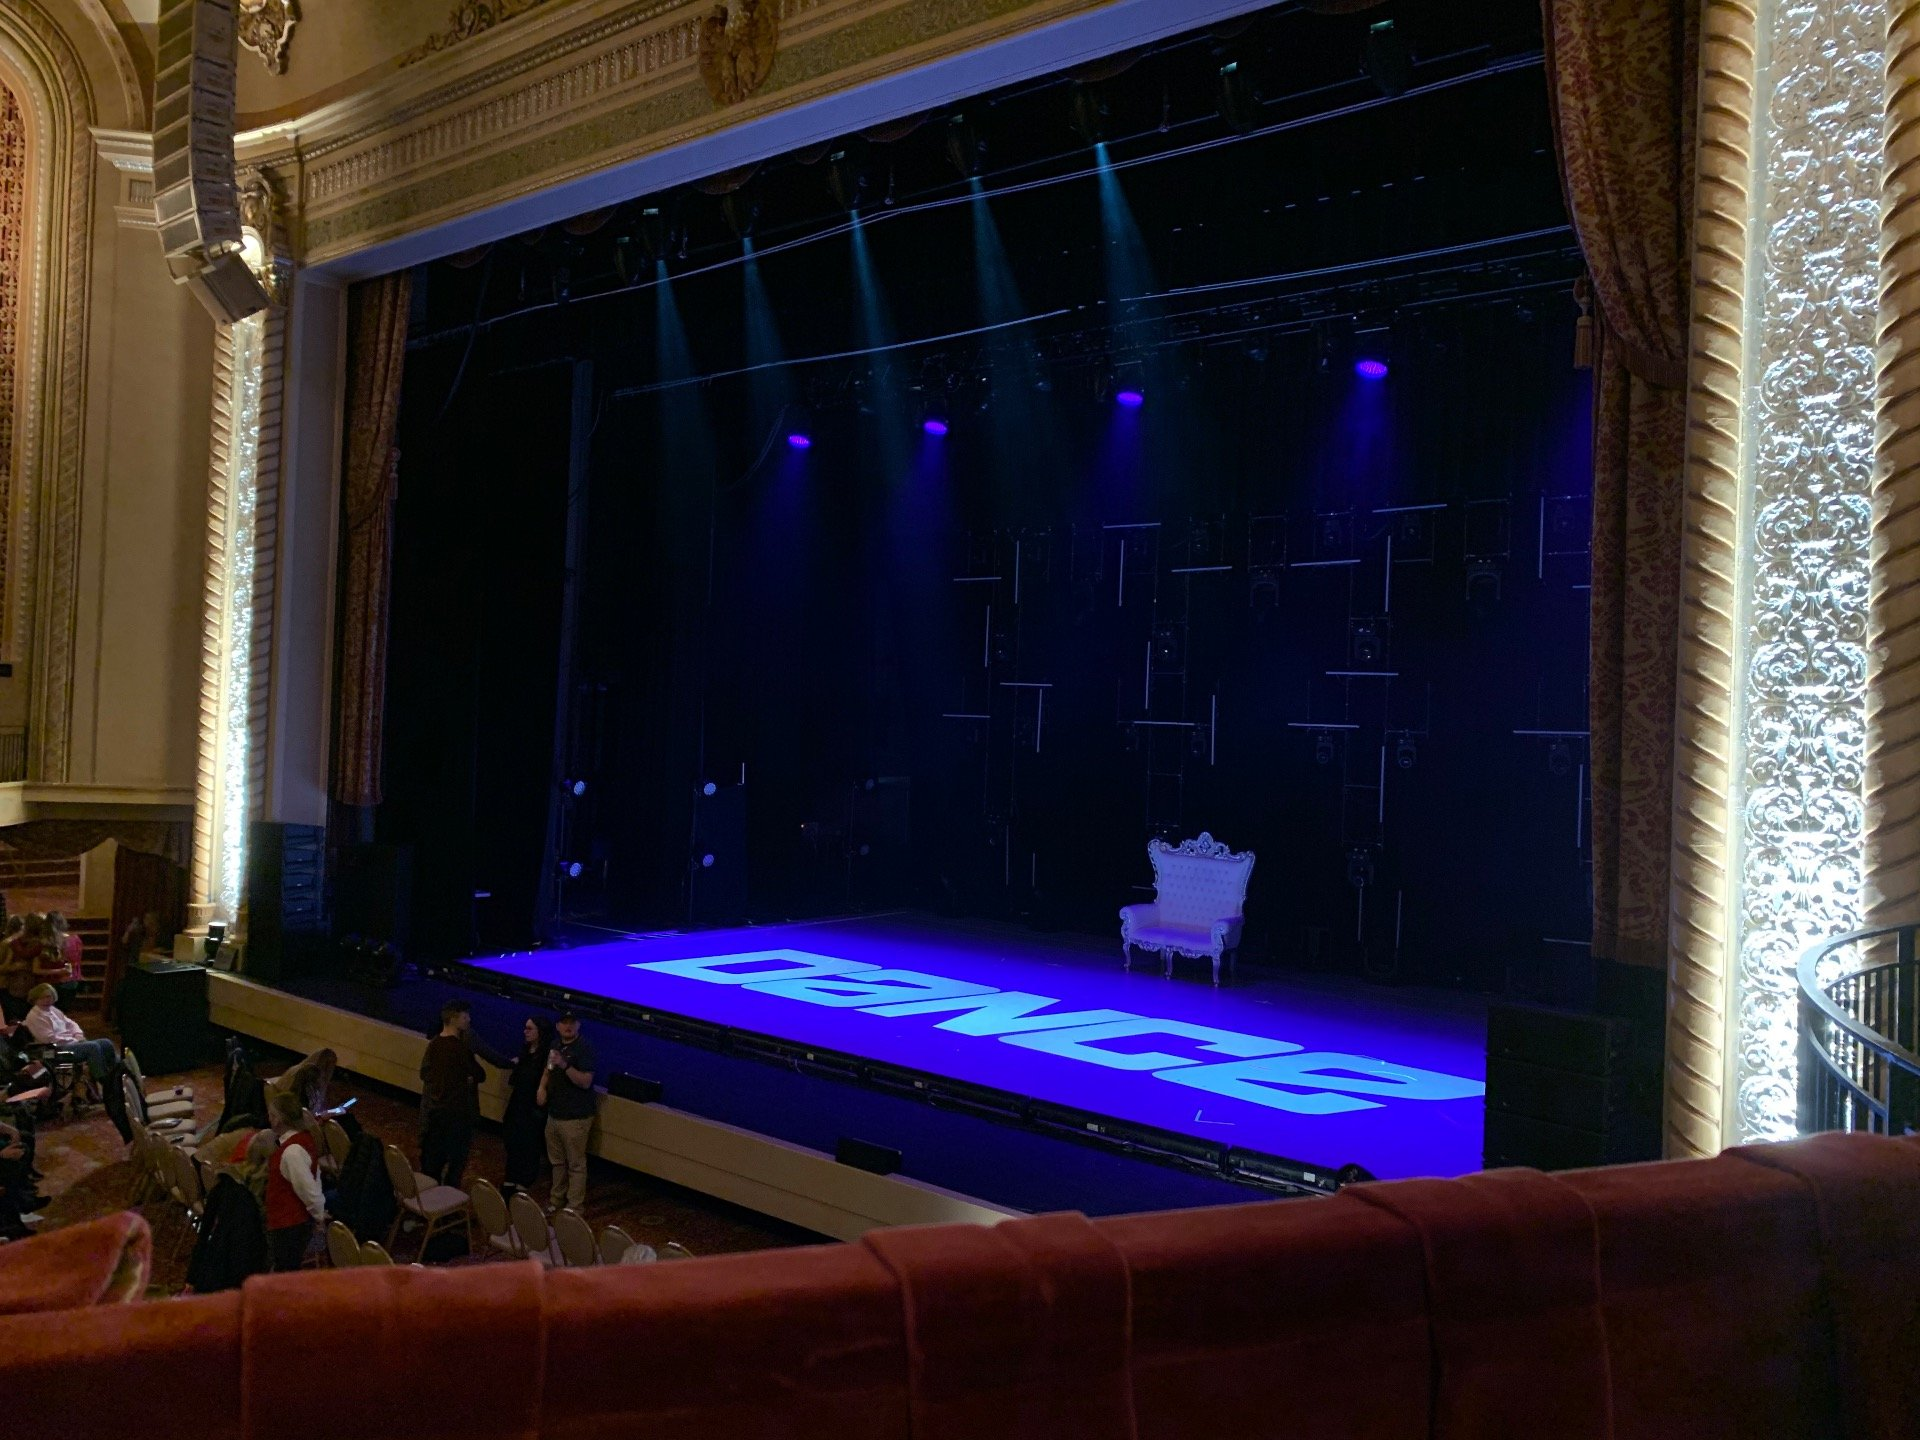 Genesee Theatre Section LOGER Row A Seat 104